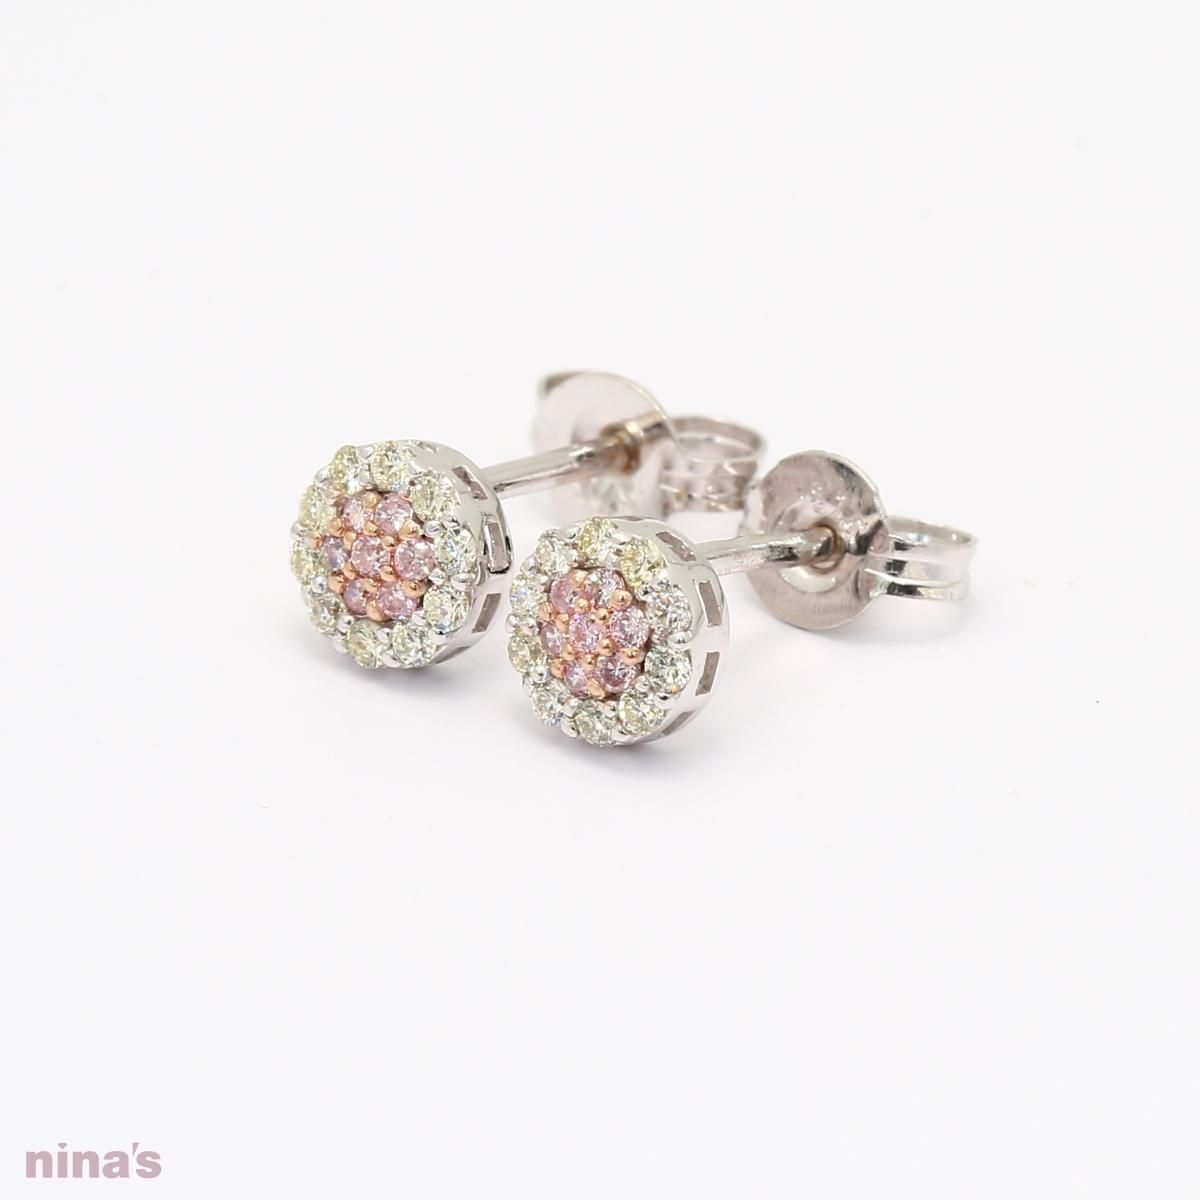 e0ba83d9e Pink and White diamond cluster studs with Rose White Gold - Our pink and white  diamond cluster stud earrings are just divine. The 9 karat white and rose  ...